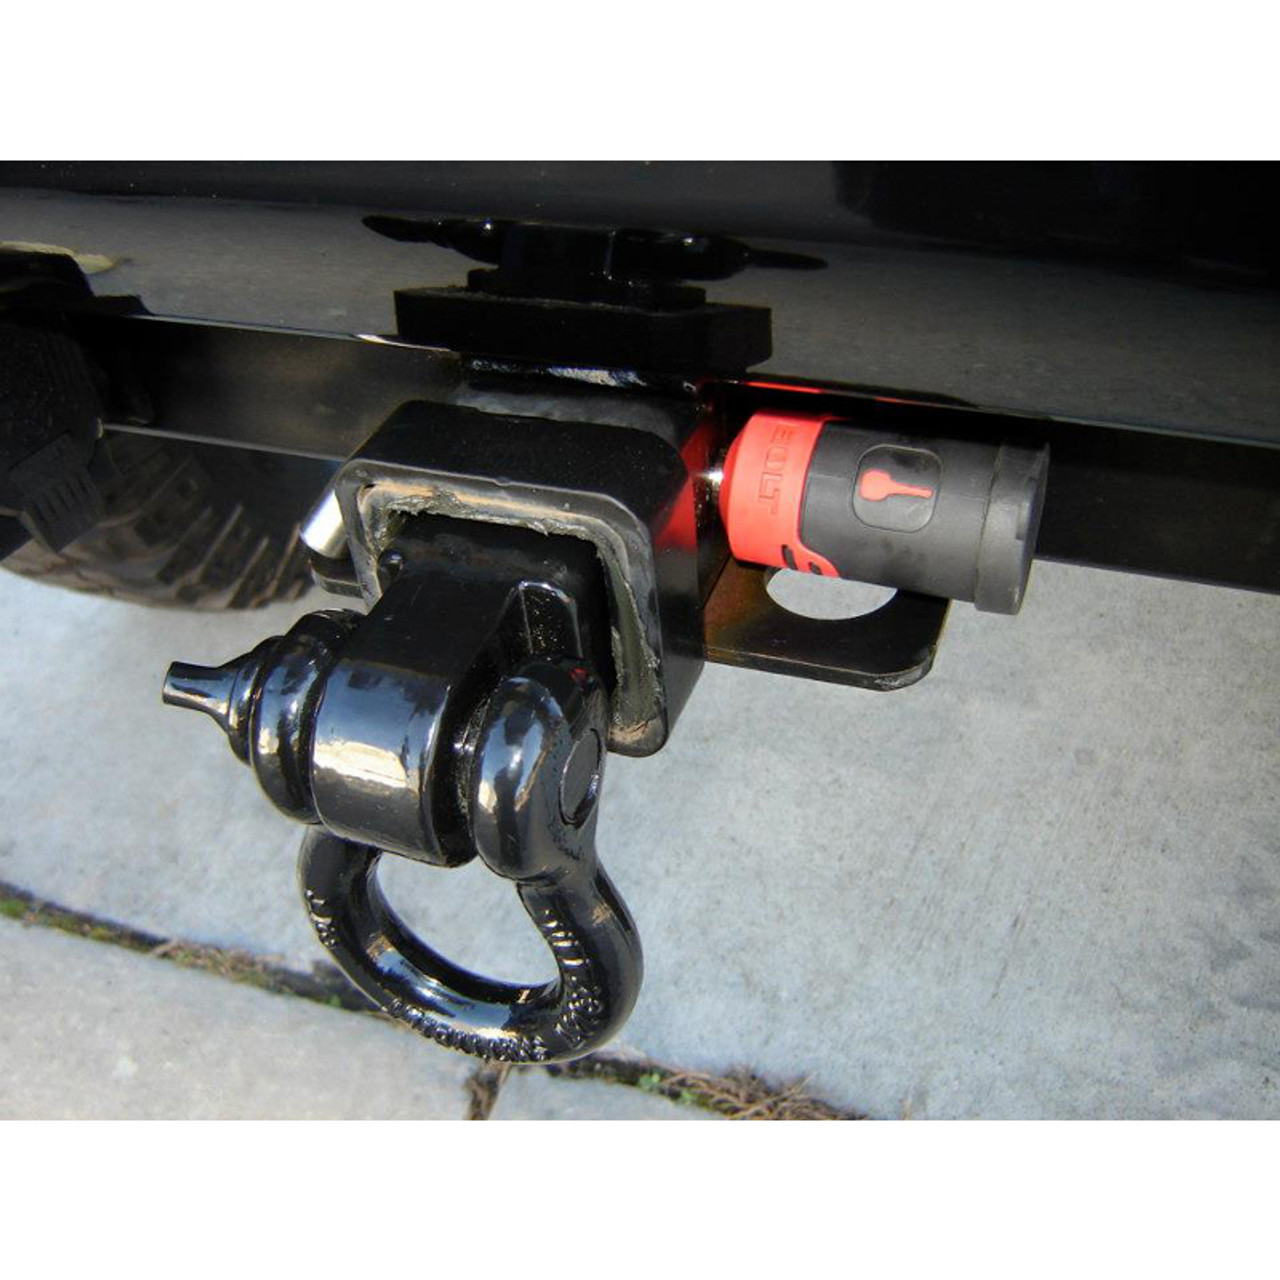 BoltLock Mounted on Receiver Hitch